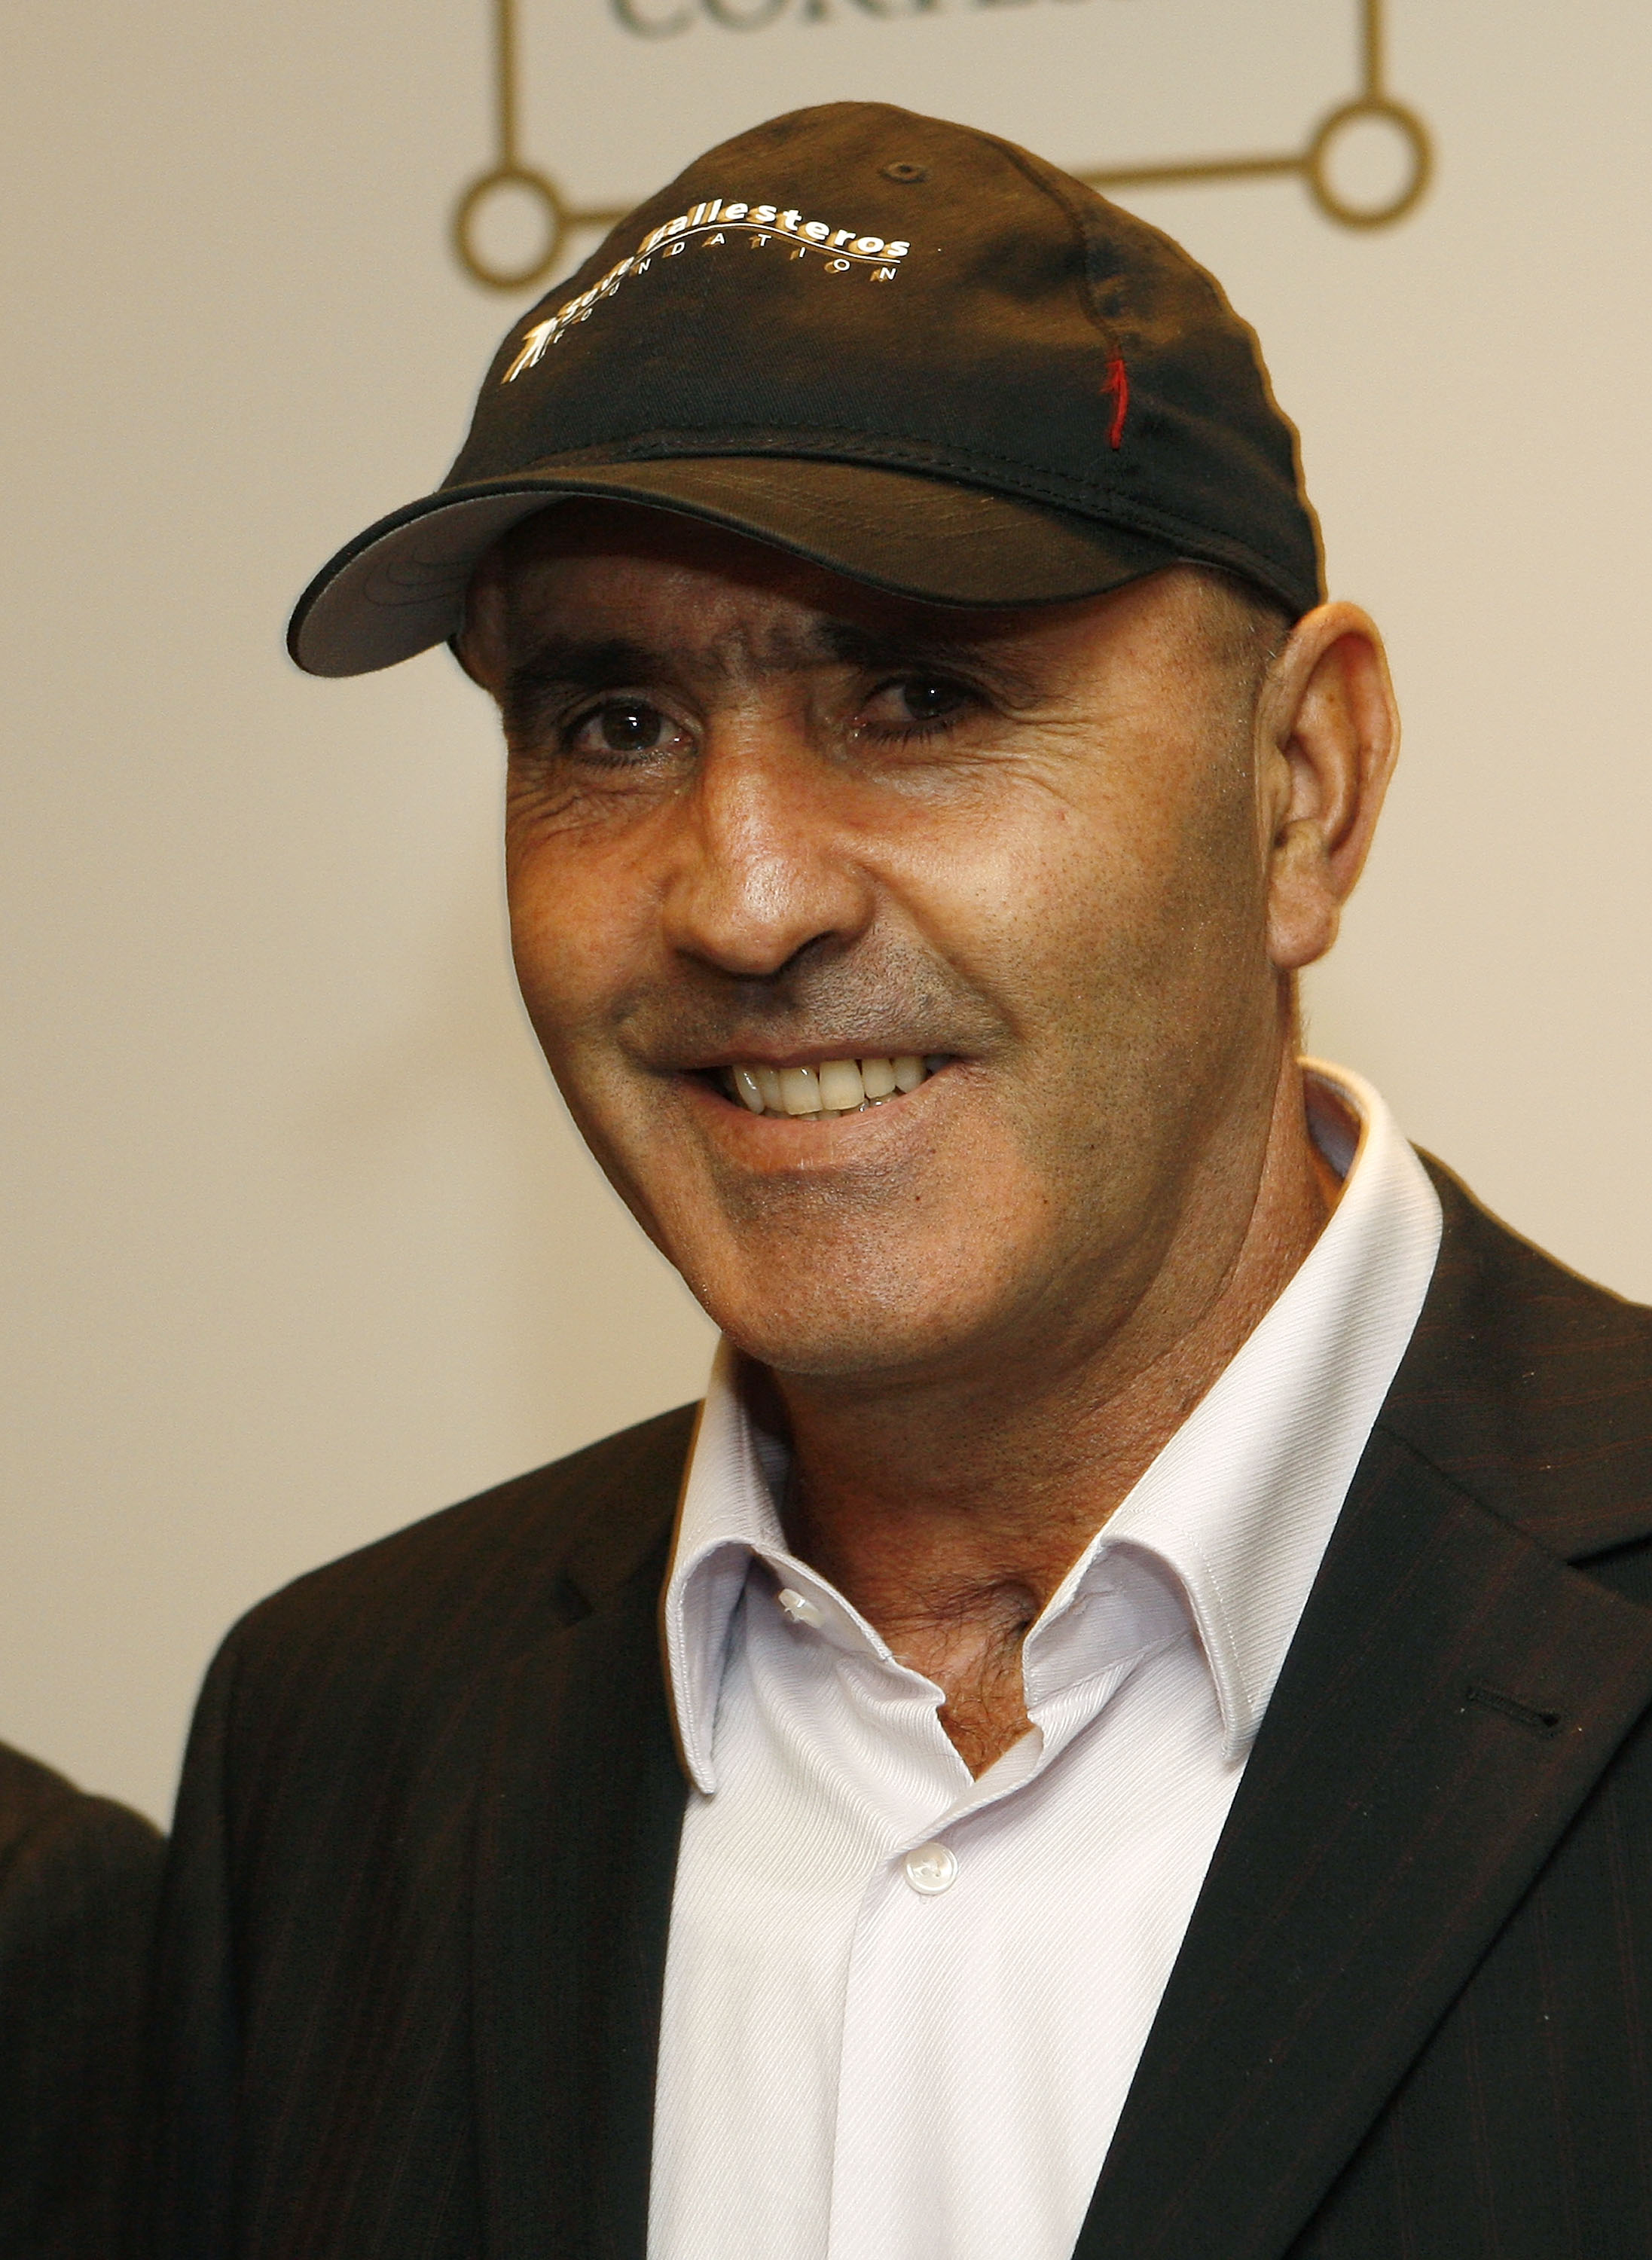 MADRID, SPAIN - OCTOBER 14: Seve Ballesteros of Spain smiles during the press conference of the Volvo World Match Play Championship 2009 presentation at Intercontinental Hotel on October 14, 2009 in Madrid, Spain. Ballesteros, who is recovering from cance